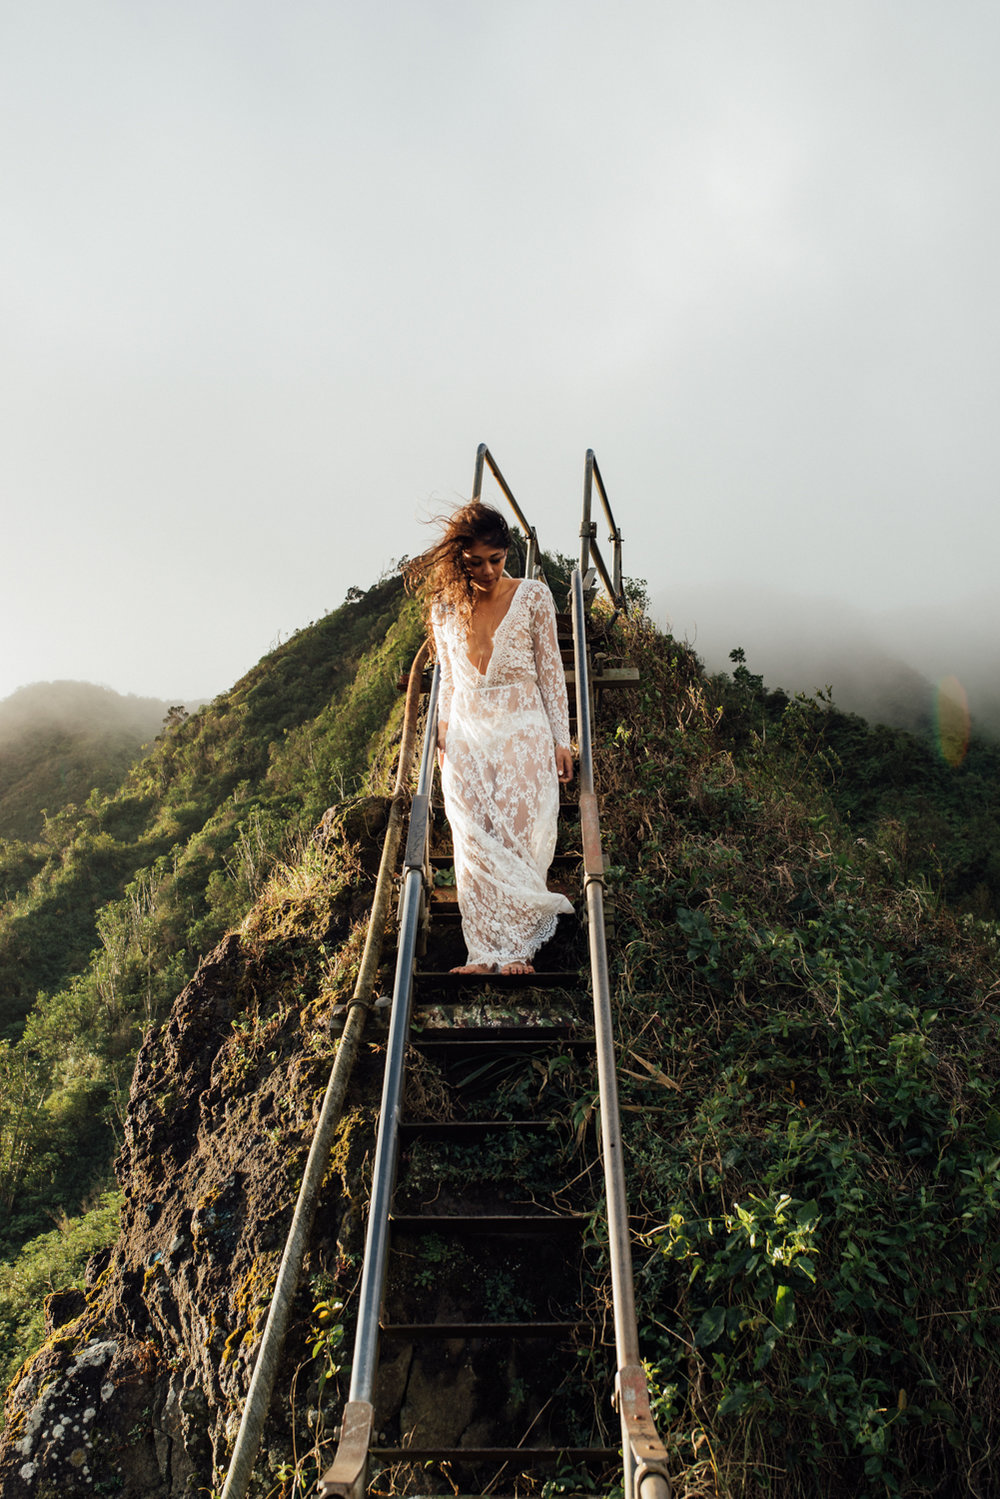 aa9a7-cliff2bchristine7chaikustairs-1.jpg